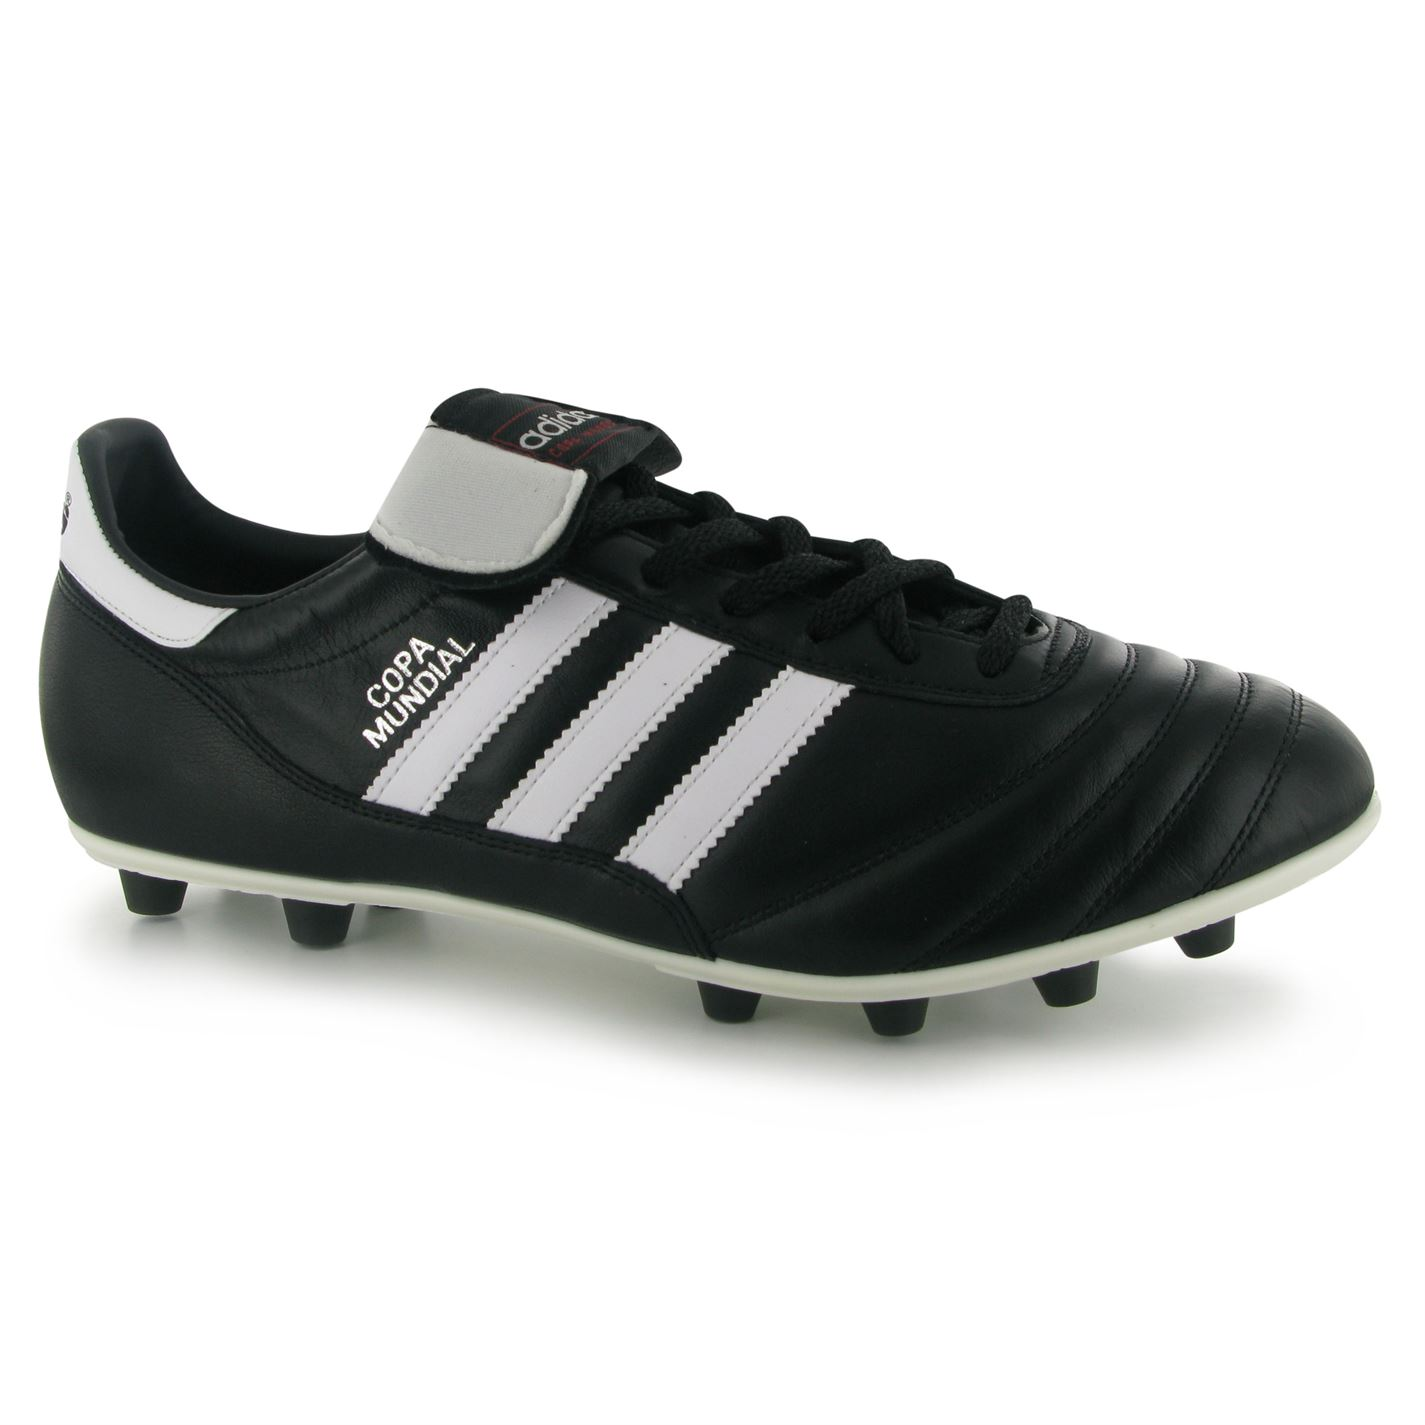 adidas copa mundial football boots cheap